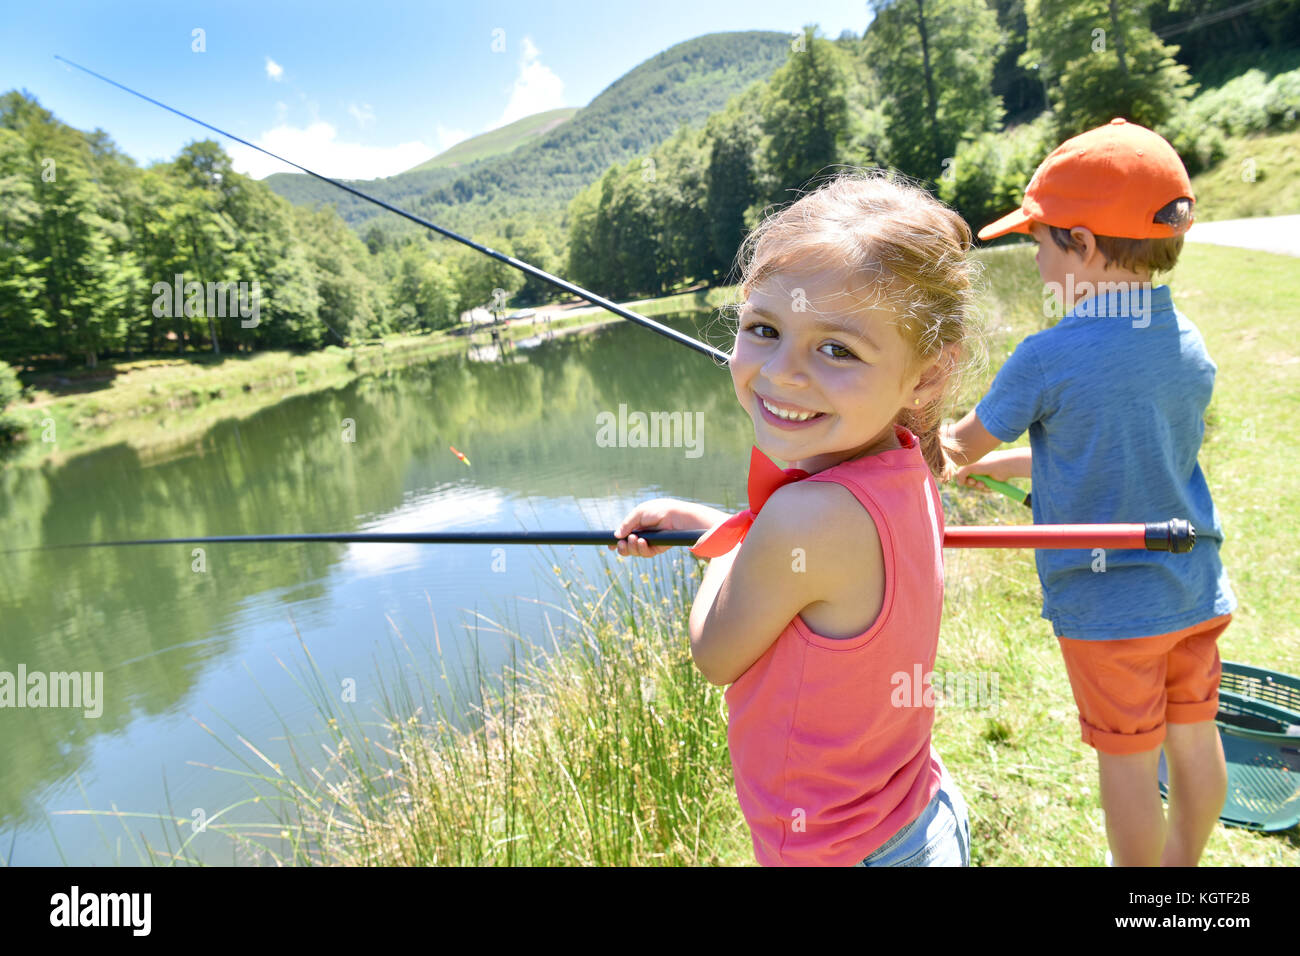 Blond girl fishing stock photos blond girl fishing stock for Little girl fishing pole